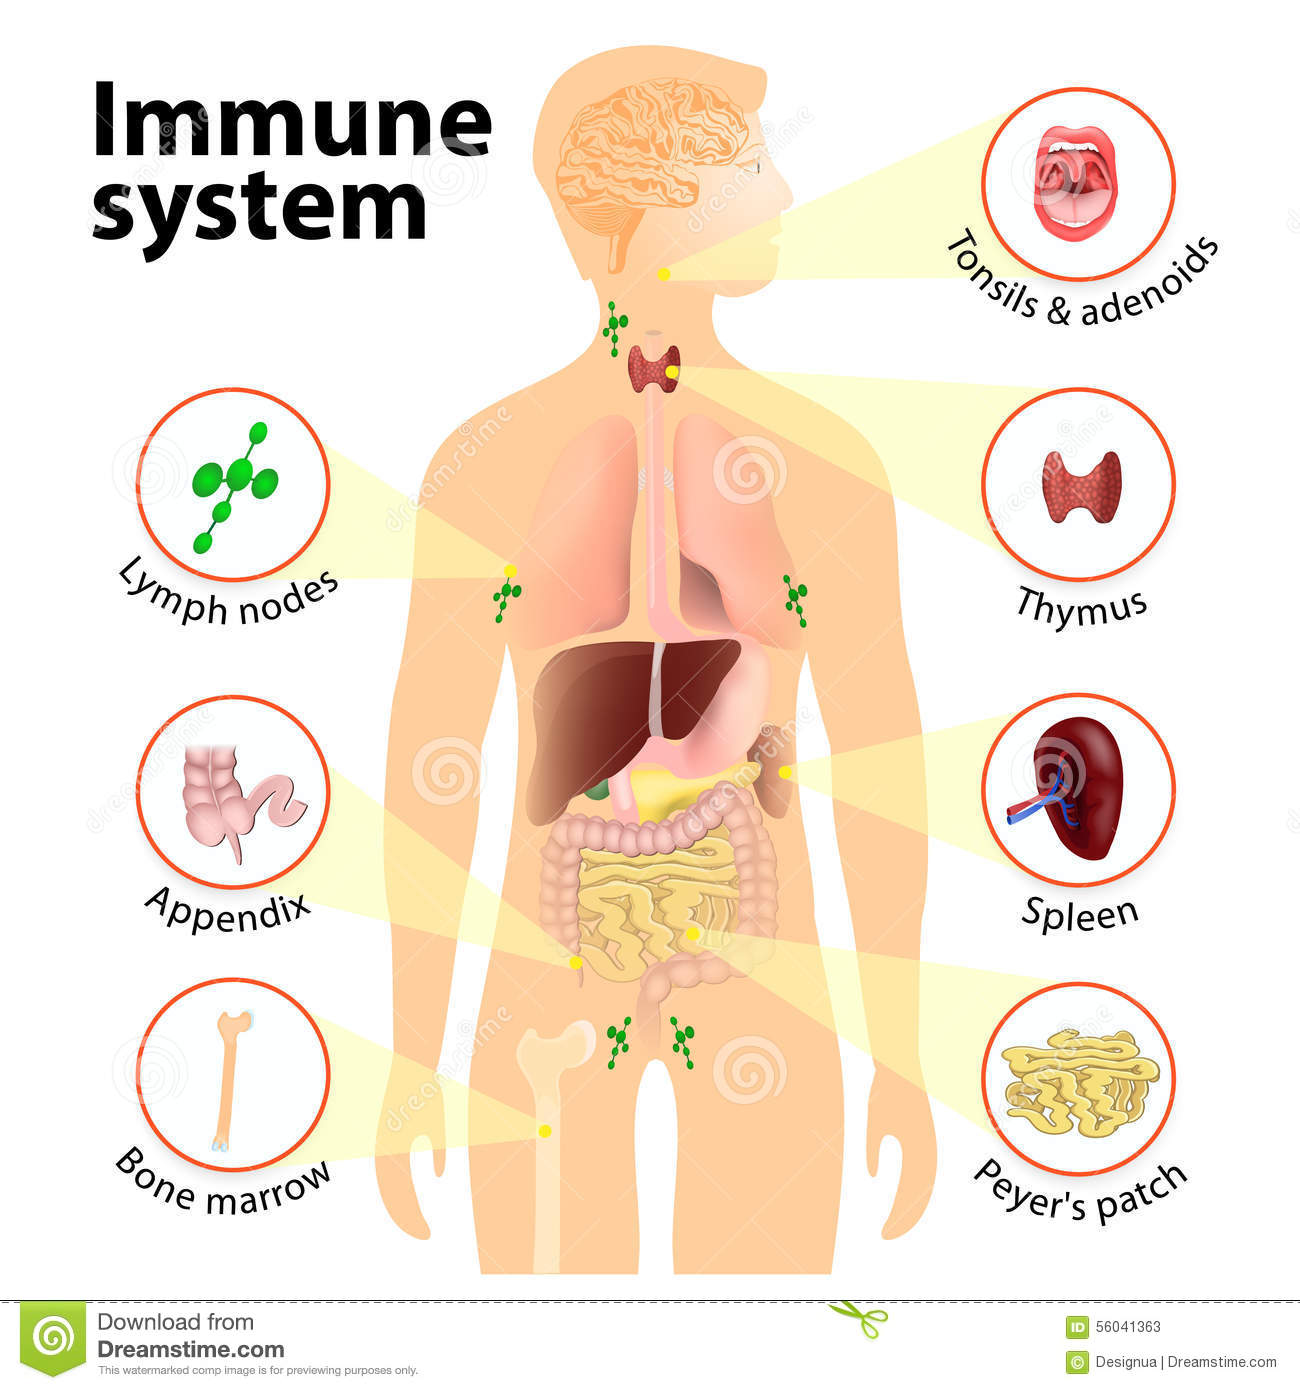 The Immune System: The Body's Defense Department